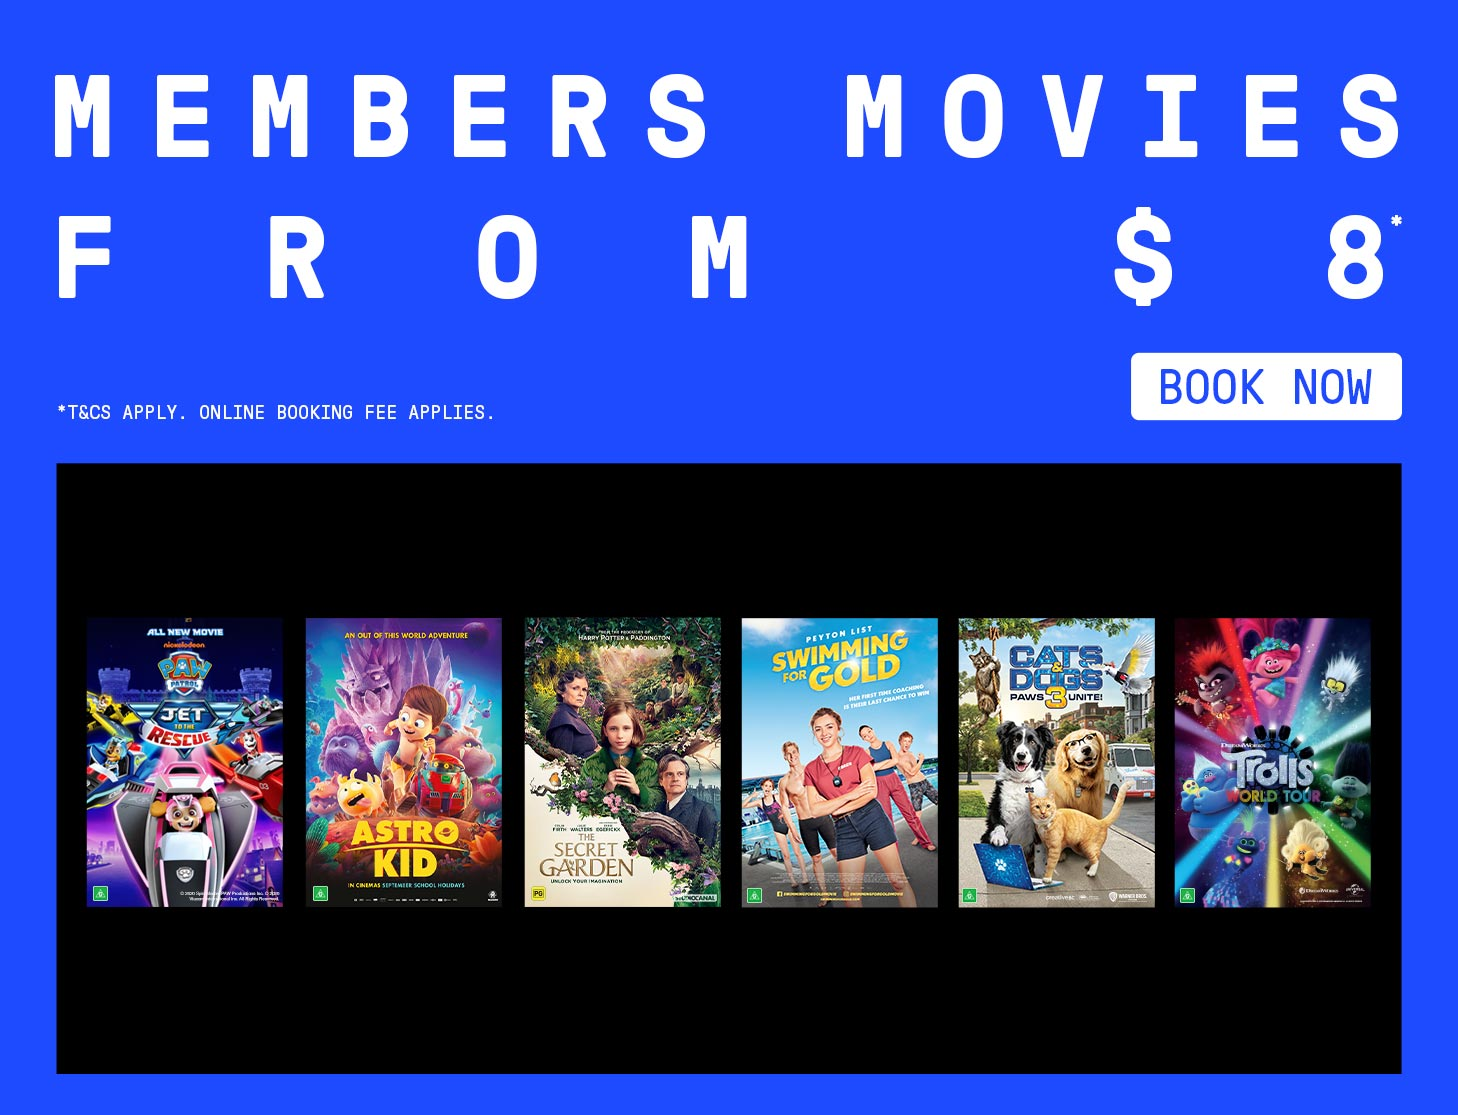 Members Movies From $8